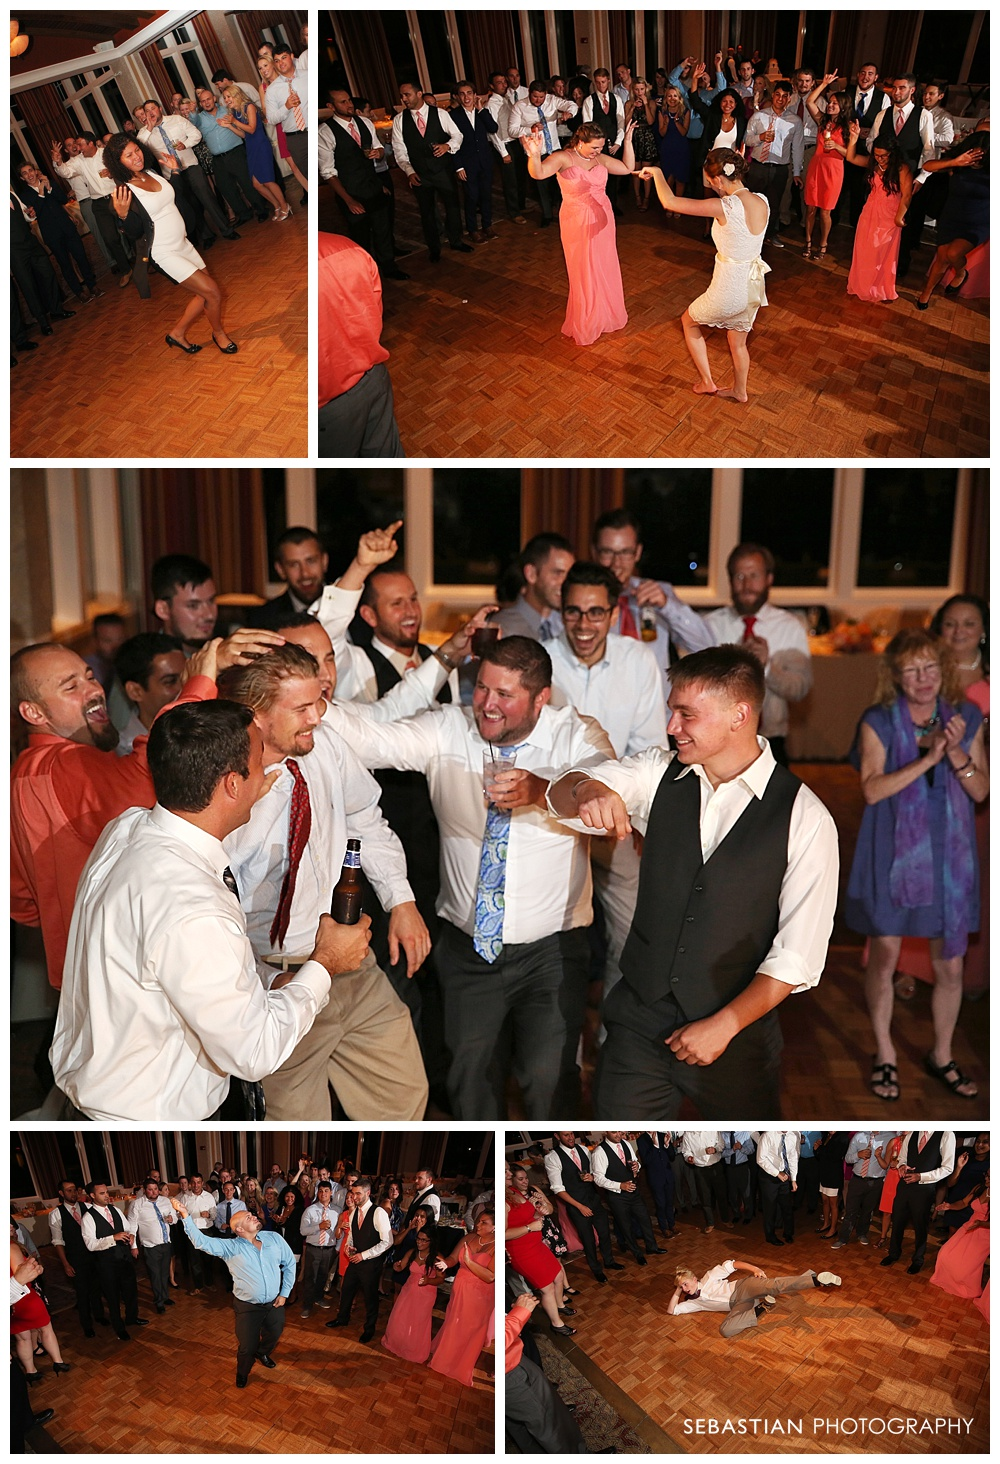 Sebastian_Photography_Studio_Wedding_Kohnle_LakeOfIsles_55.jpg